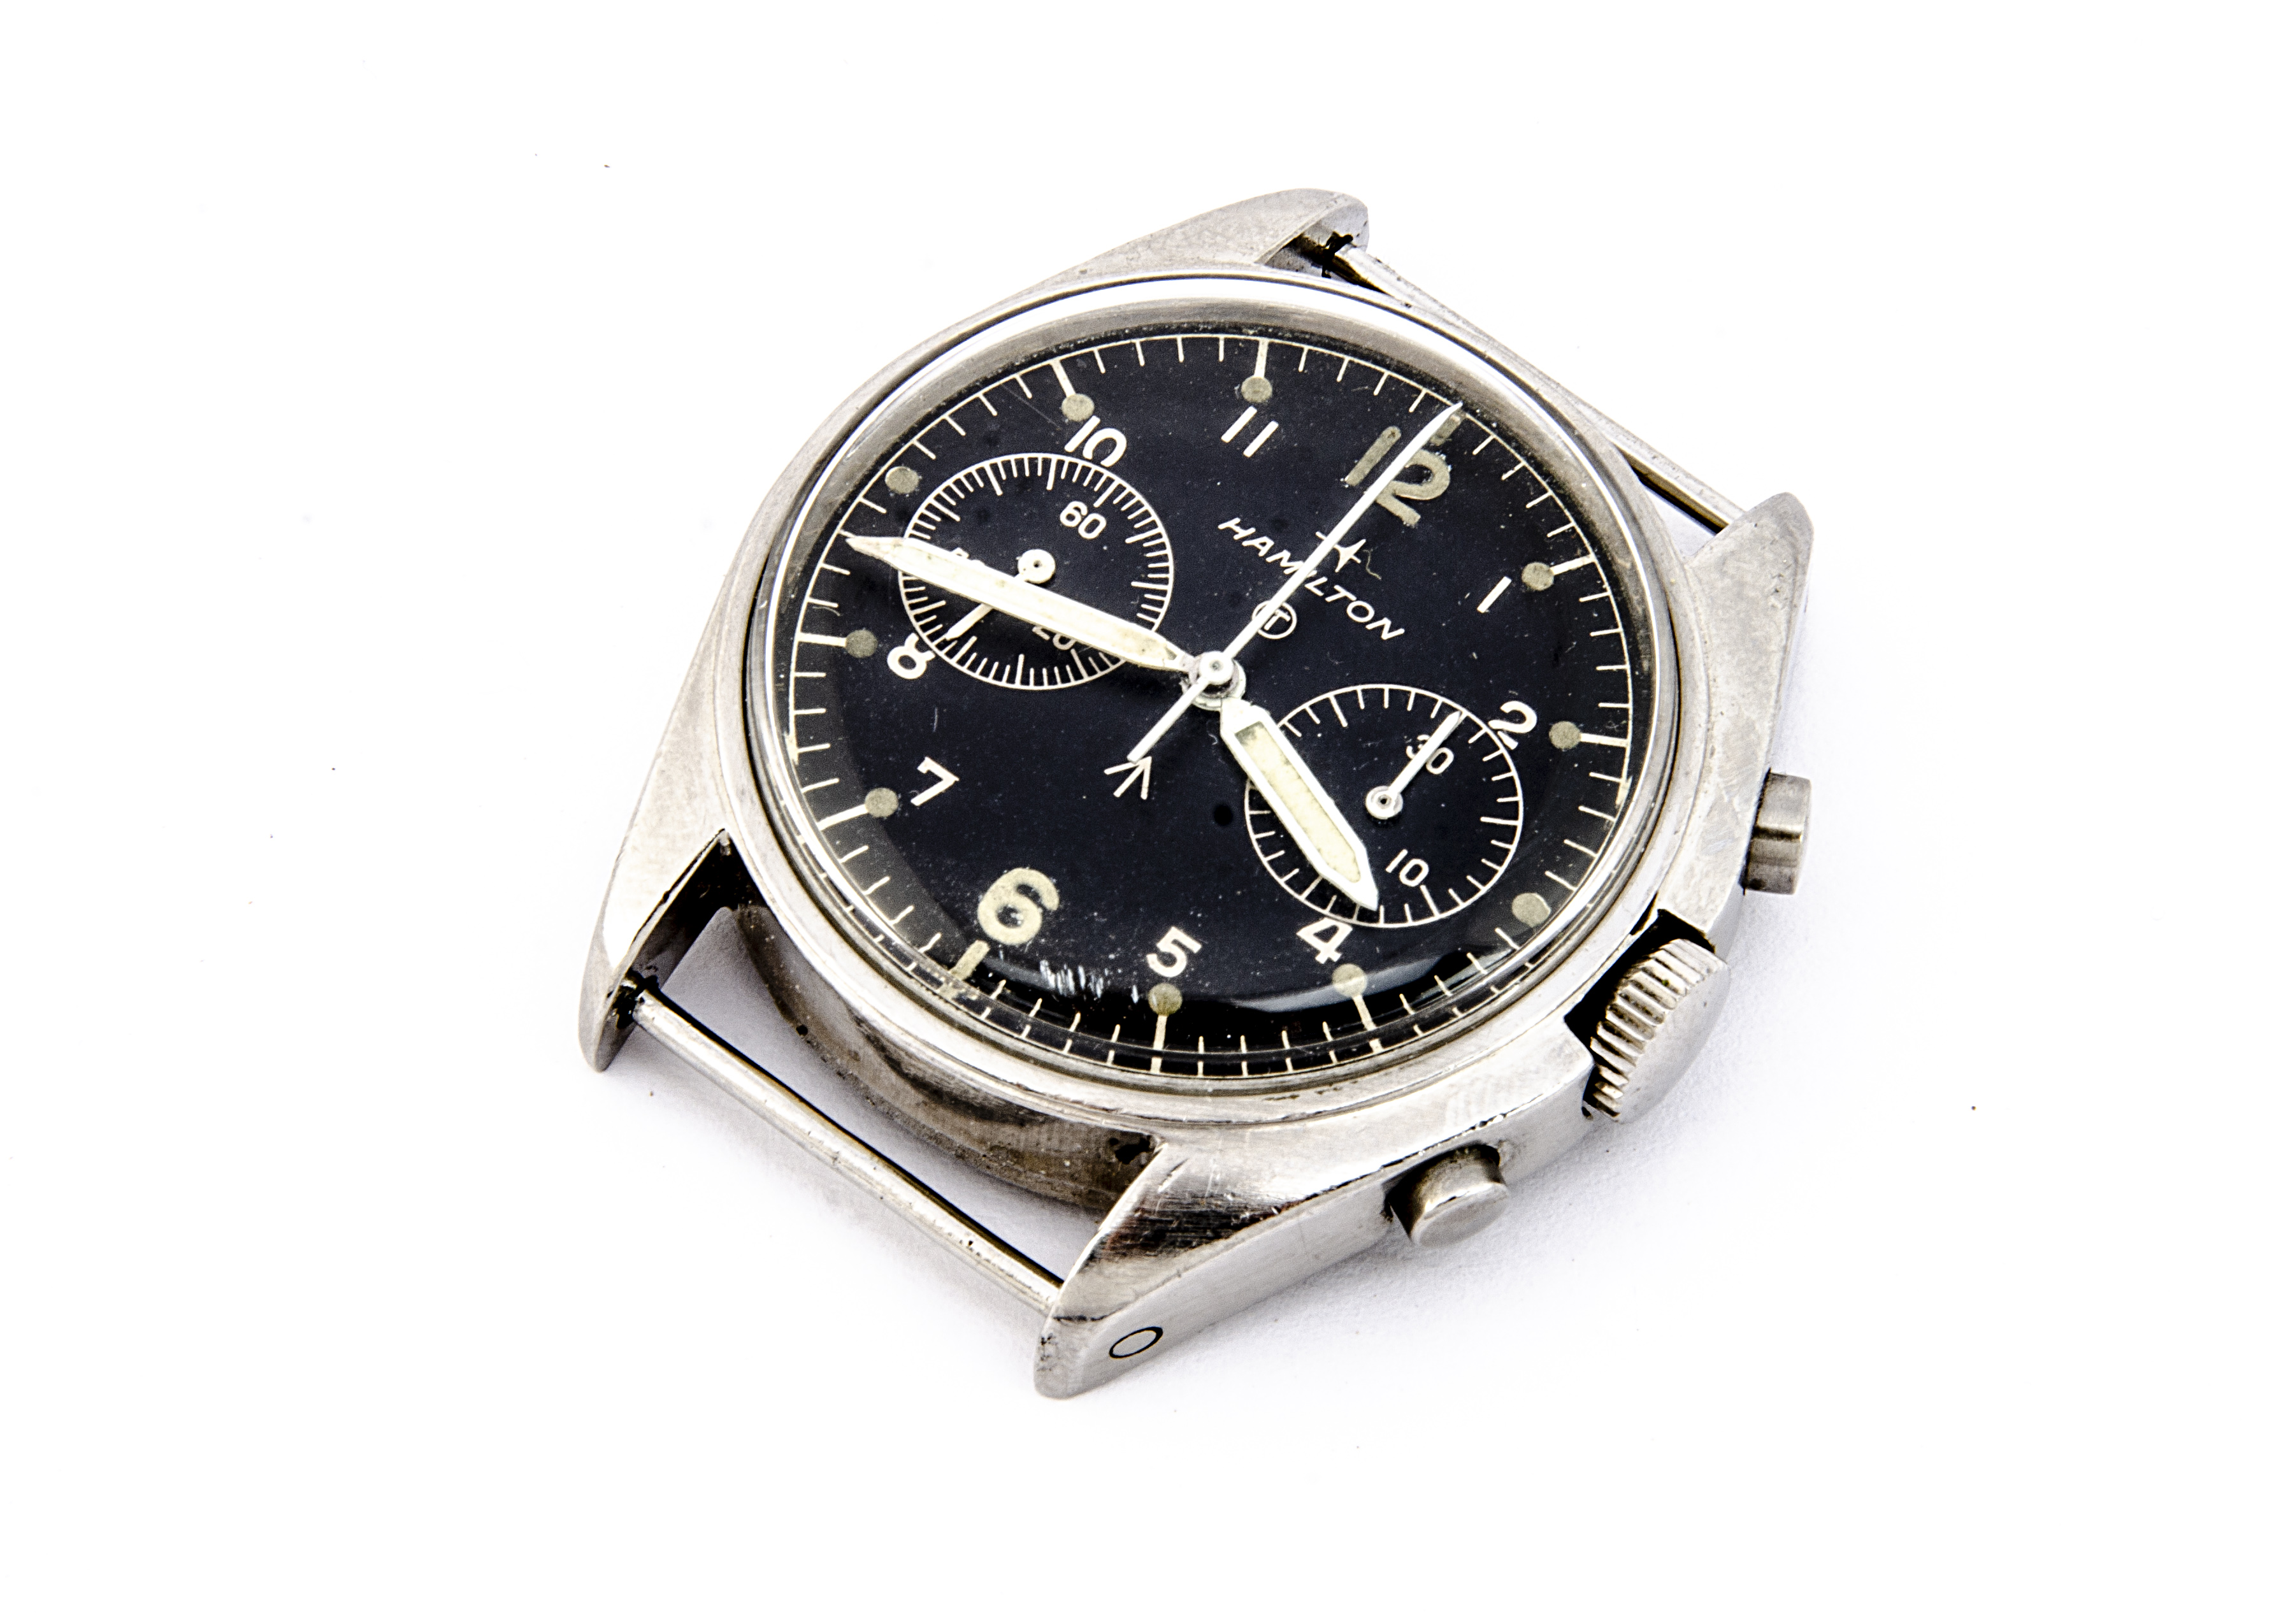 A 1970s Hamilton two button chronograph Royal Air Force stainless steel wristwatch, 39mm case,